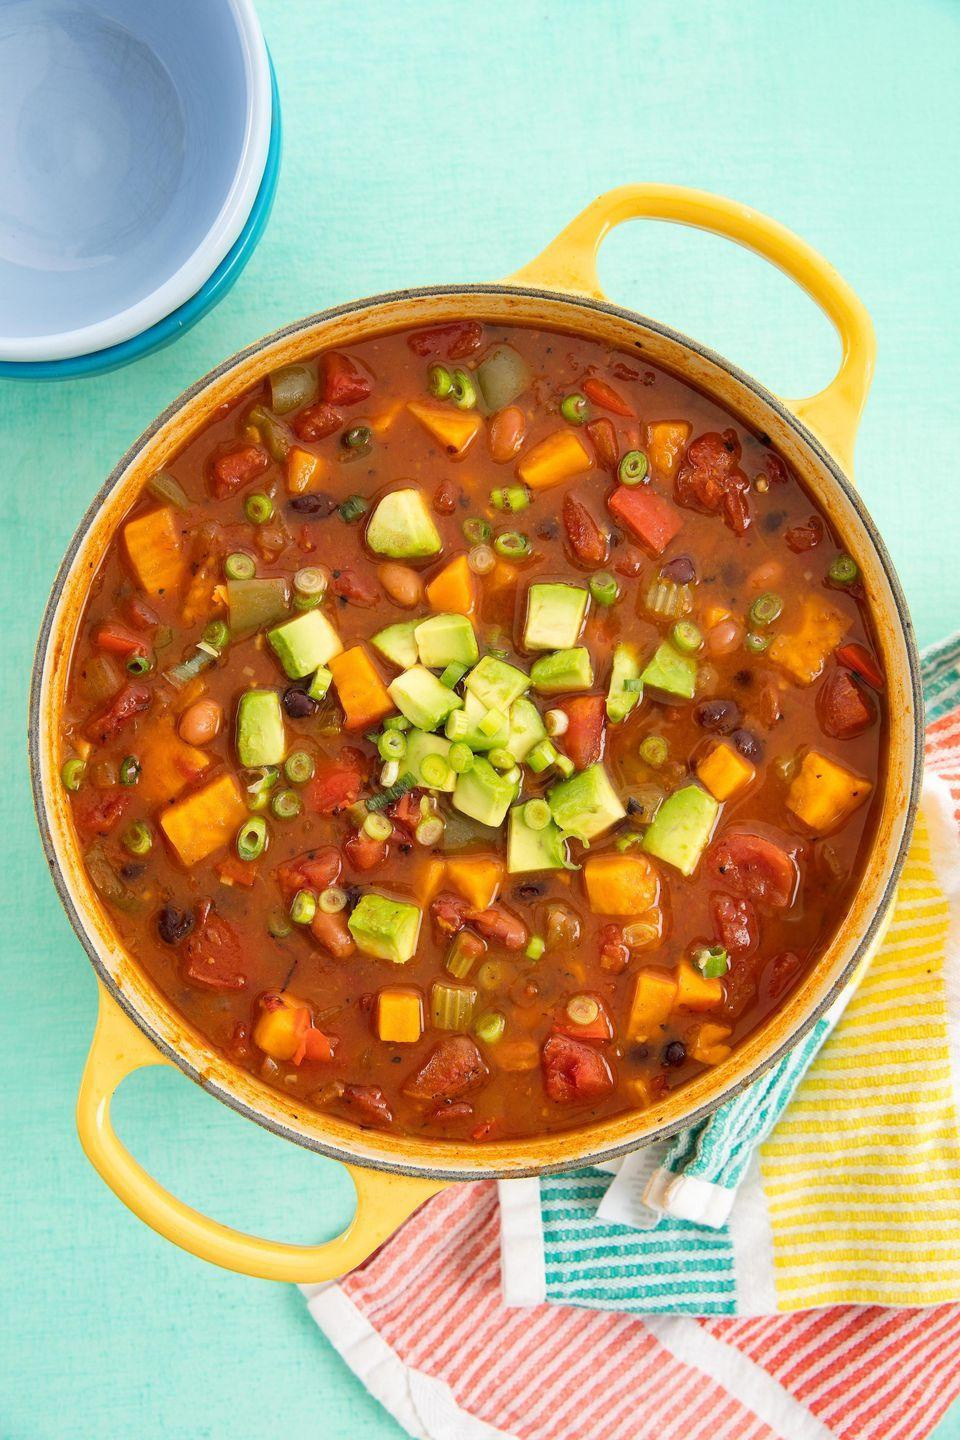 "<p>Who said chili has to have meat anyways?</p><p>Get the recipe from <a href=""https://www.delish.com/cooking/recipe-ideas/recipes/a58454/easy-vegan-chili-recipe/"" rel=""nofollow noopener"" target=""_blank"" data-ylk=""slk:Delish"" class=""link rapid-noclick-resp"">Delish</a>.</p><p><strong><a class=""link rapid-noclick-resp"" href=""https://www.amazon.com/Creuset-Signature-Enameled-Cast-Iron-4-Quart/dp/B0076NOI7A?tag=syn-yahoo-20&ascsubtag=%5Bartid%7C1782.g.4783%5Bsrc%7Cyahoo-us"" rel=""nofollow noopener"" target=""_blank"" data-ylk=""slk:BUY NOW"">BUY NOW</a><em> Le Creuset Dutch Oven, $385, amazon.com</em></strong></p>"